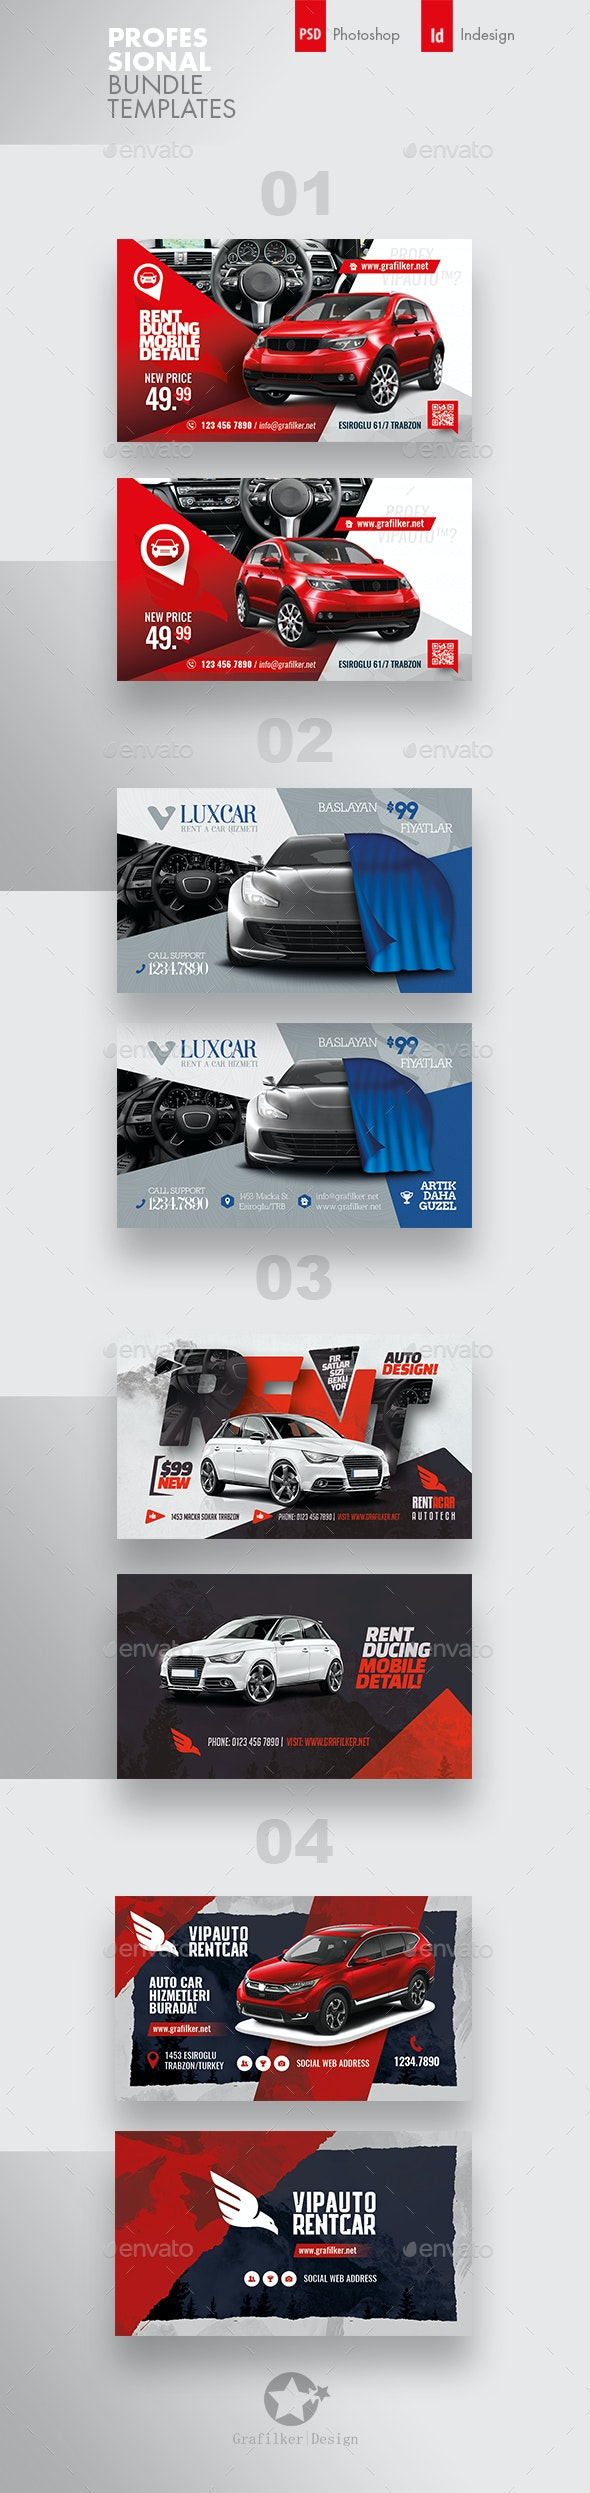 Rent A Car Business Card Bundle Templates - Corporate Business Cards